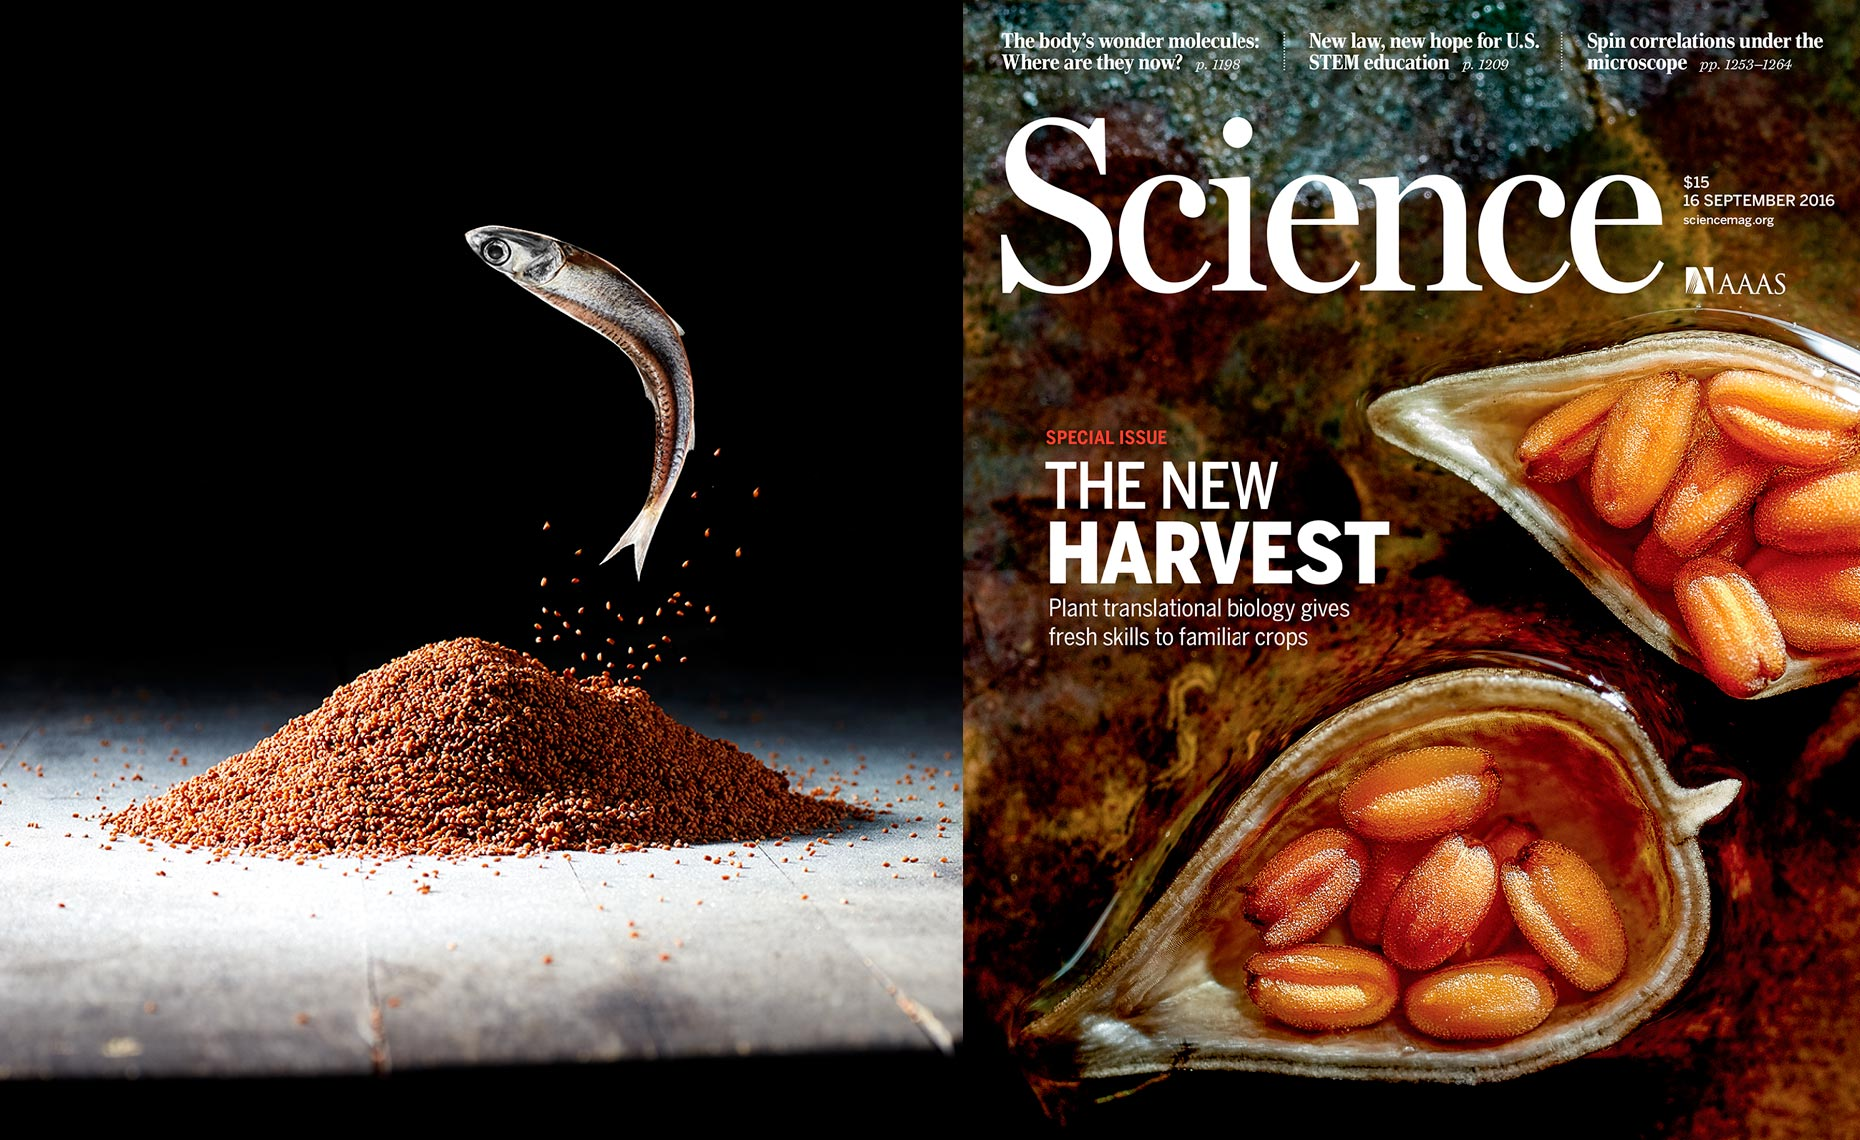 Science magazine editorial